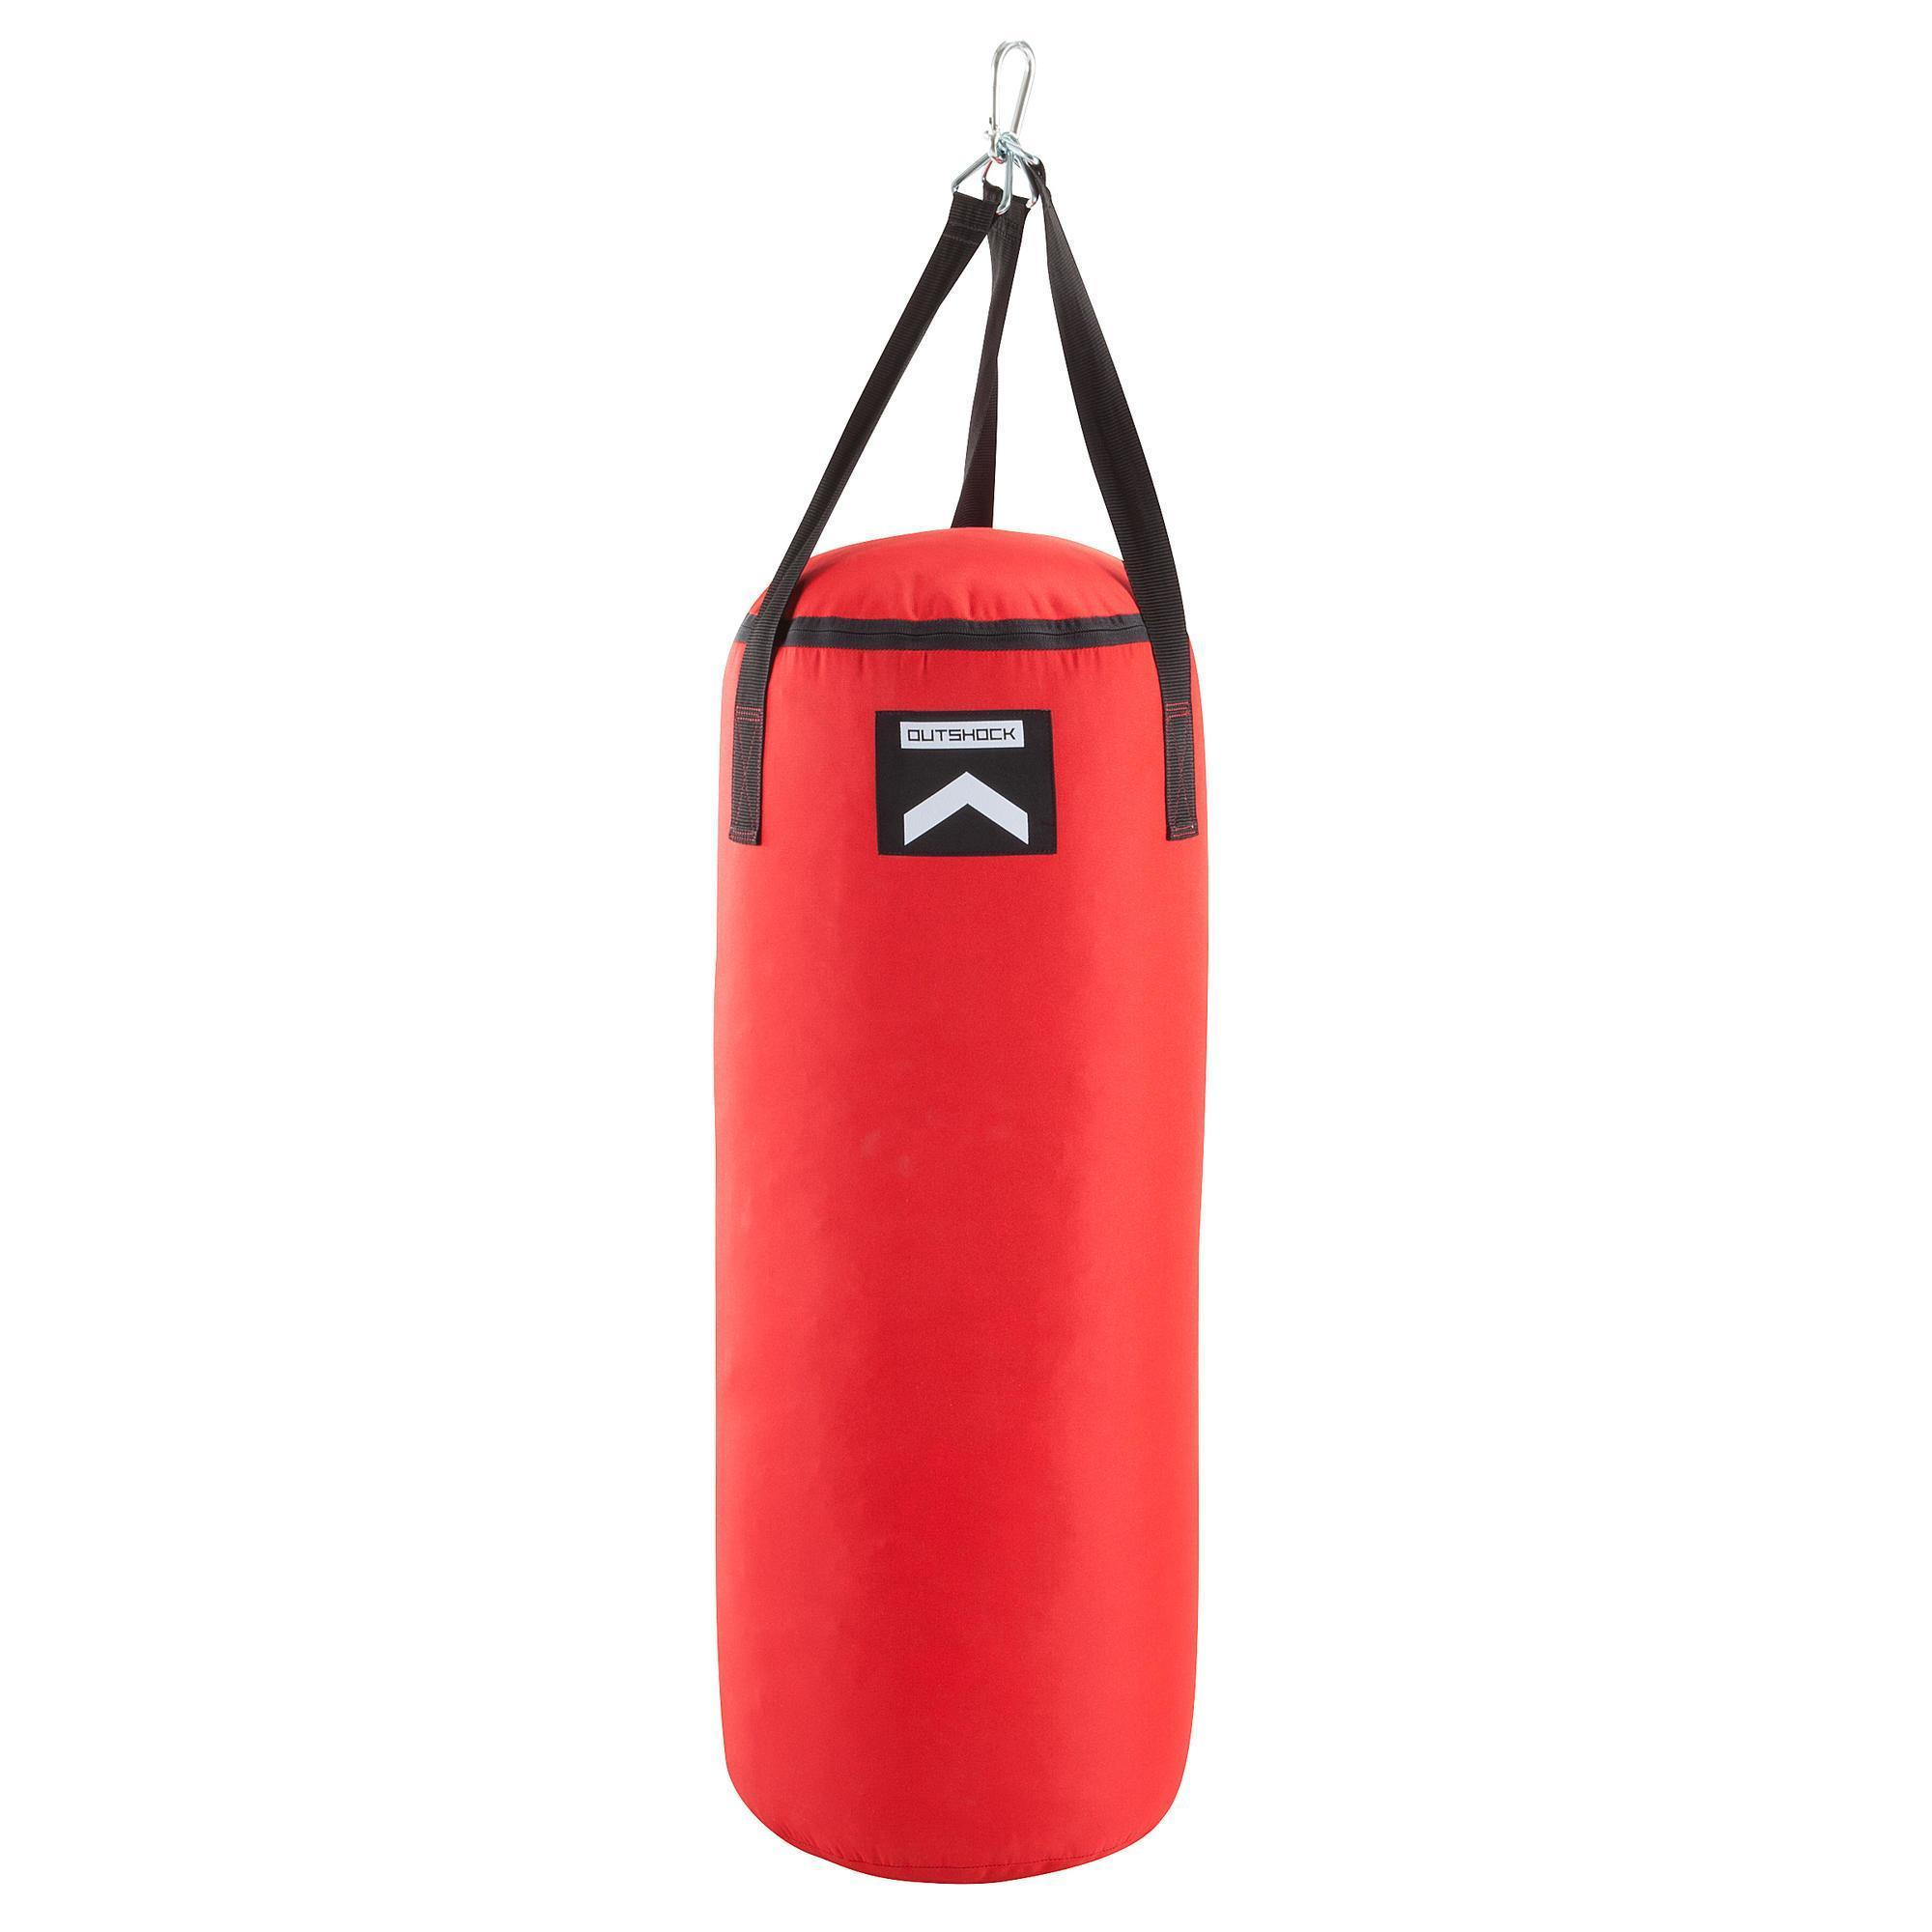 Punch bags and accessories - Domyos by Decathlon bcaa04433